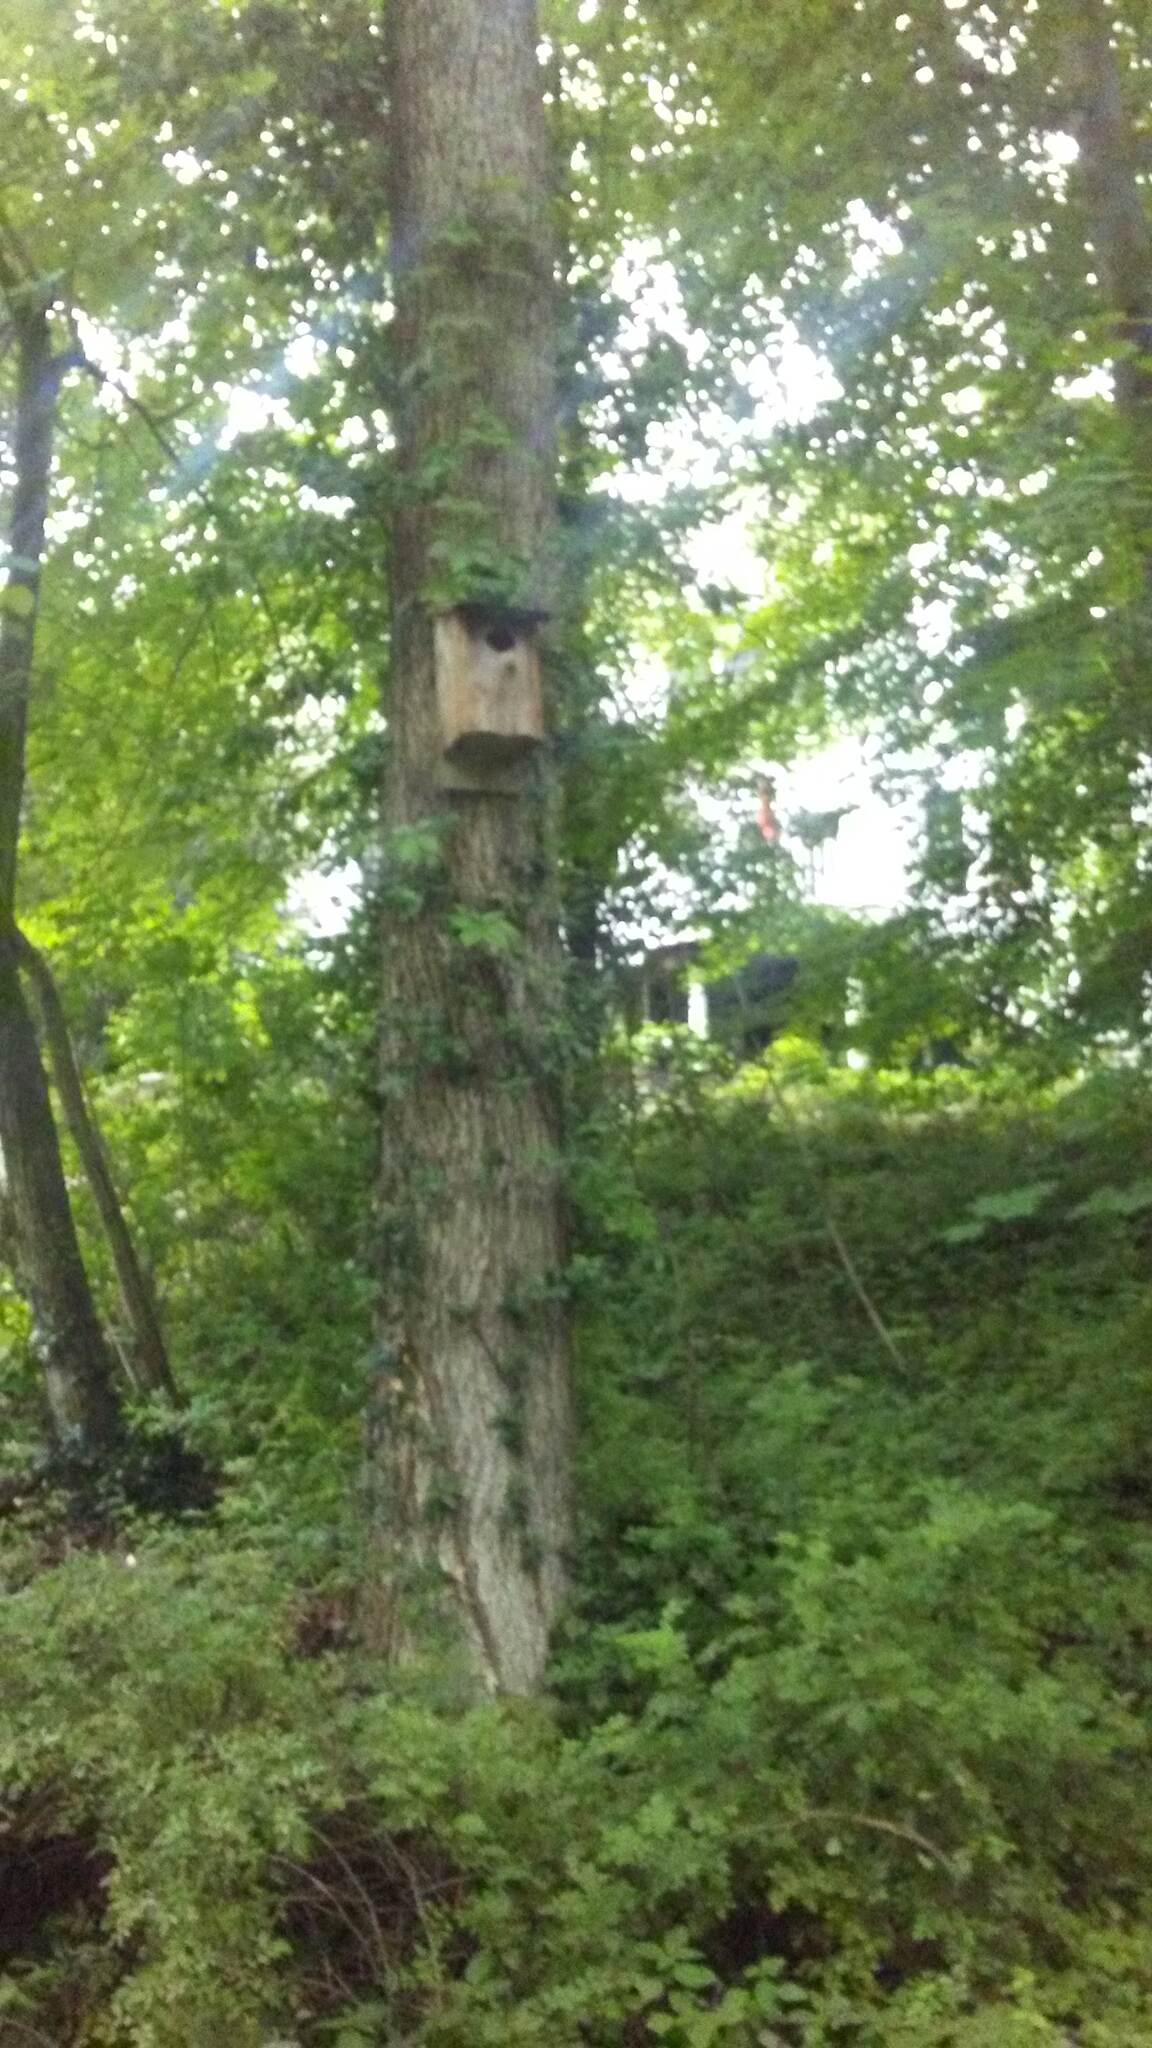 Mill Creek Trail (PA) Mill Creek Trail This birdhouse is one of many that can be seen along the trail.